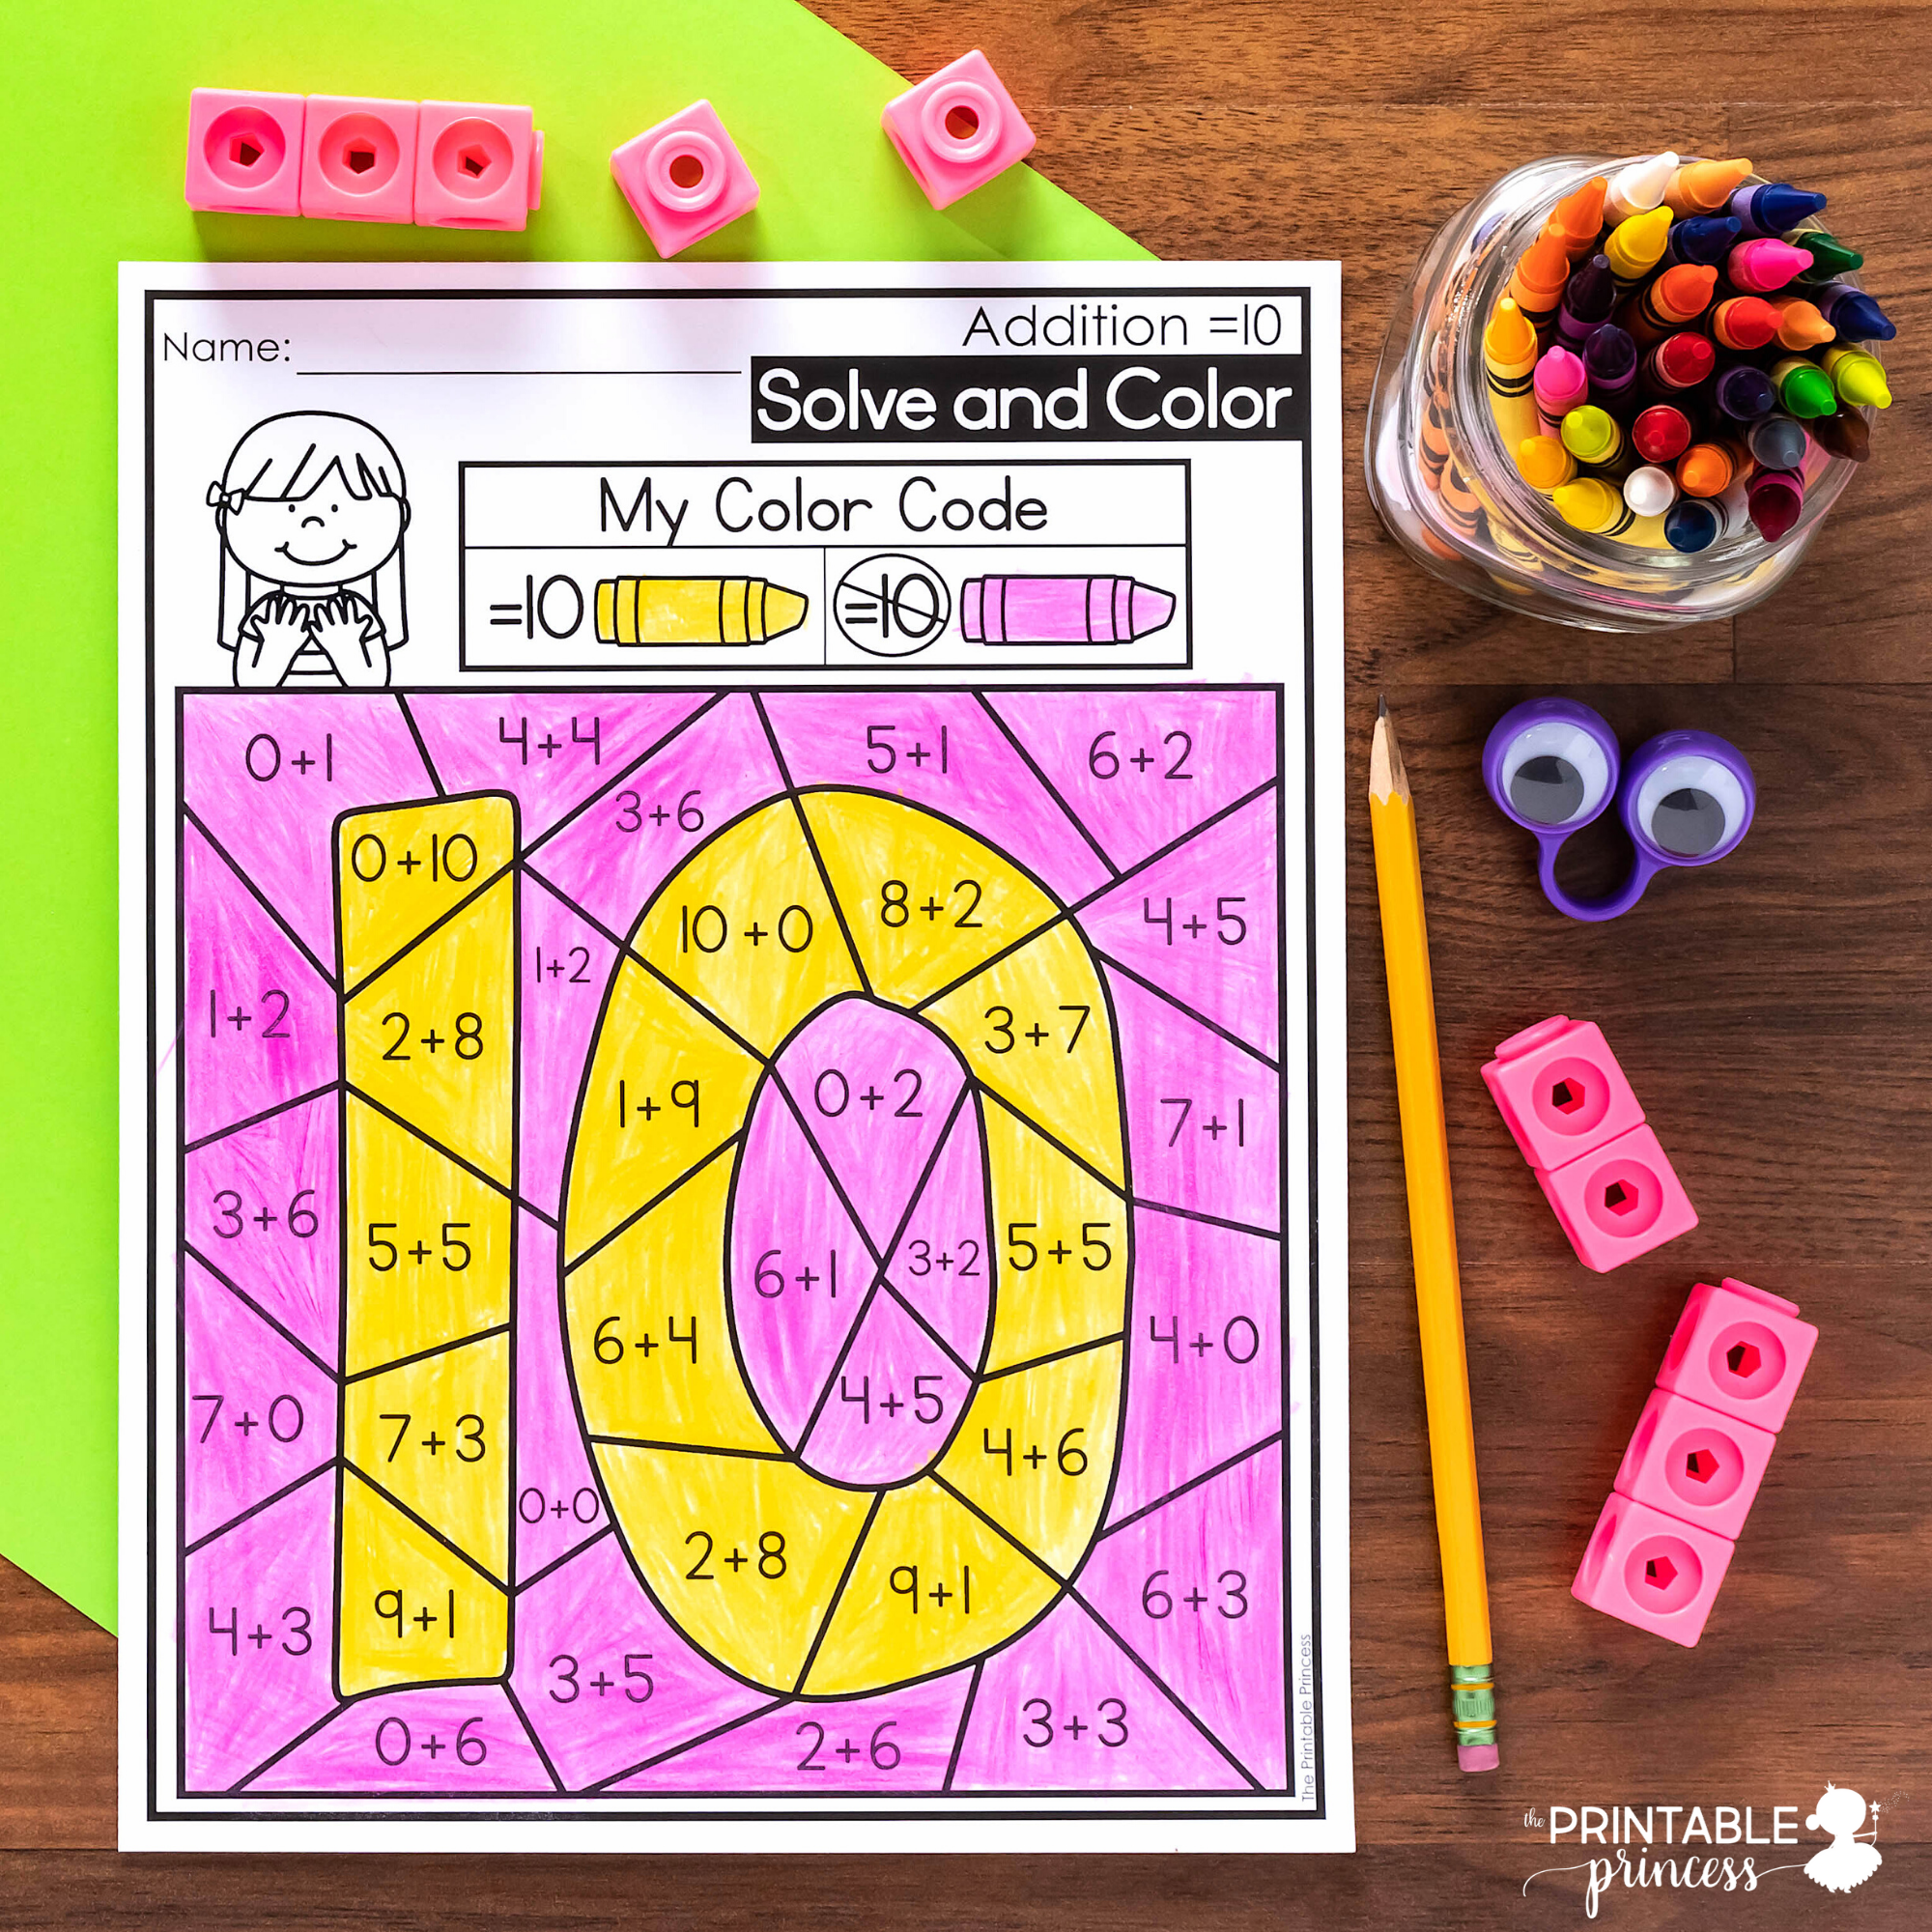 Solve and Color Addition and Subtraction Coloring Pages ...